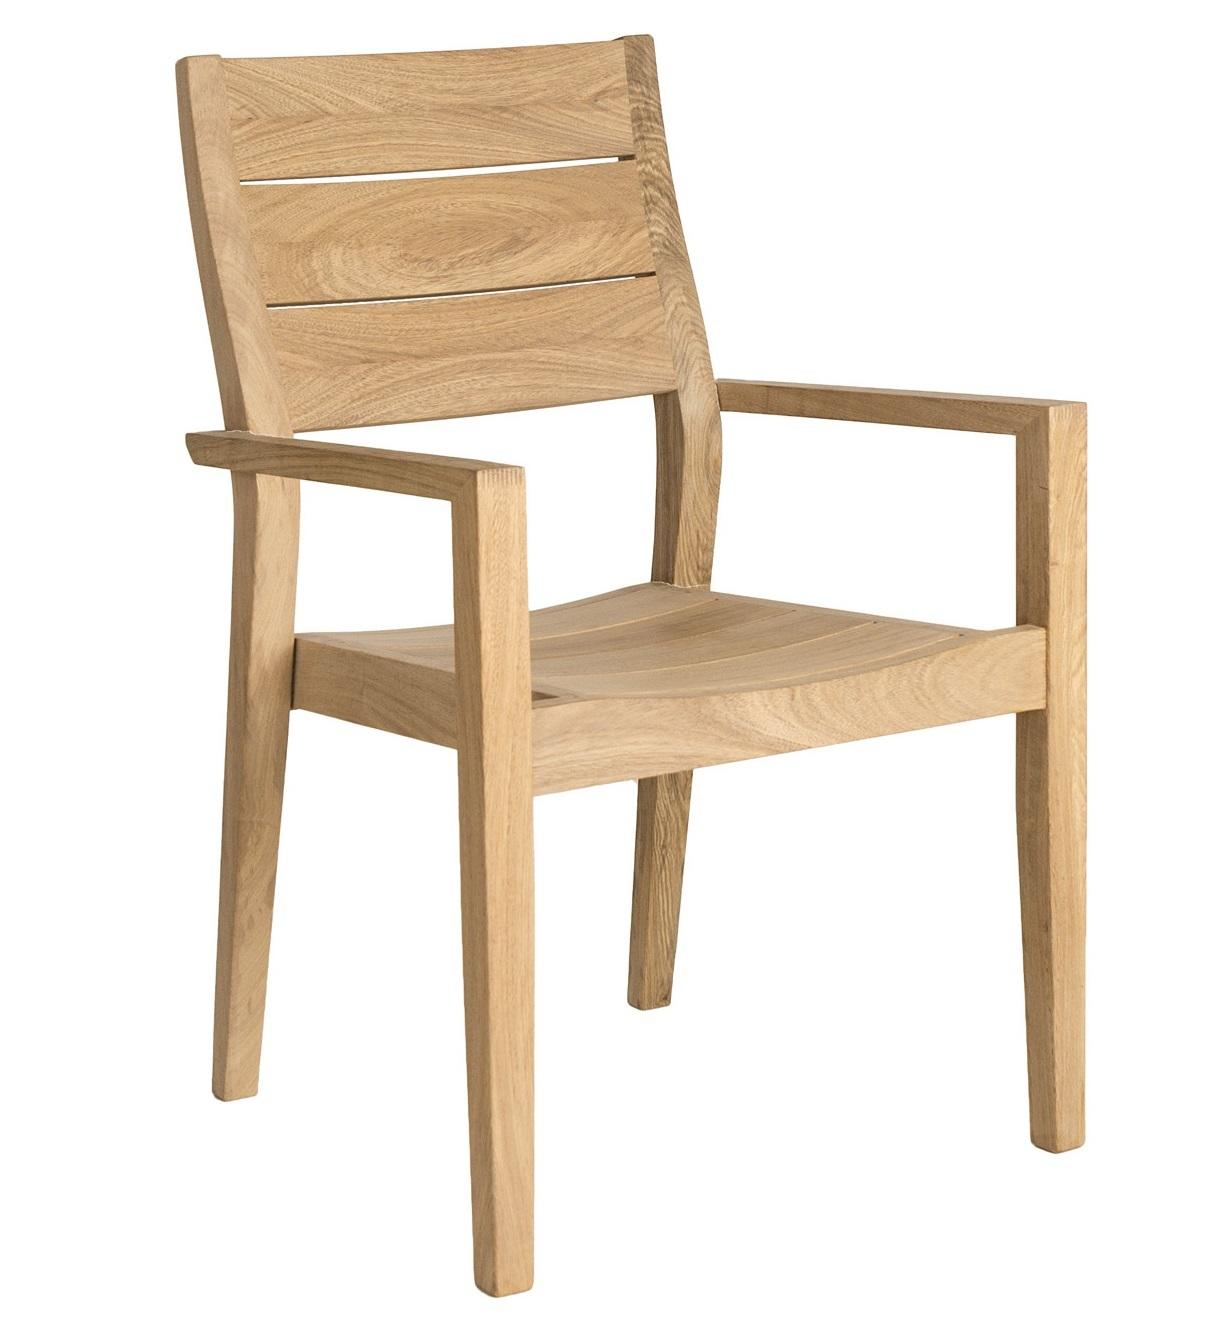 garden_dining_chair_patio_roble_hardwood_wood_modern_kent_uk_alexander_rose